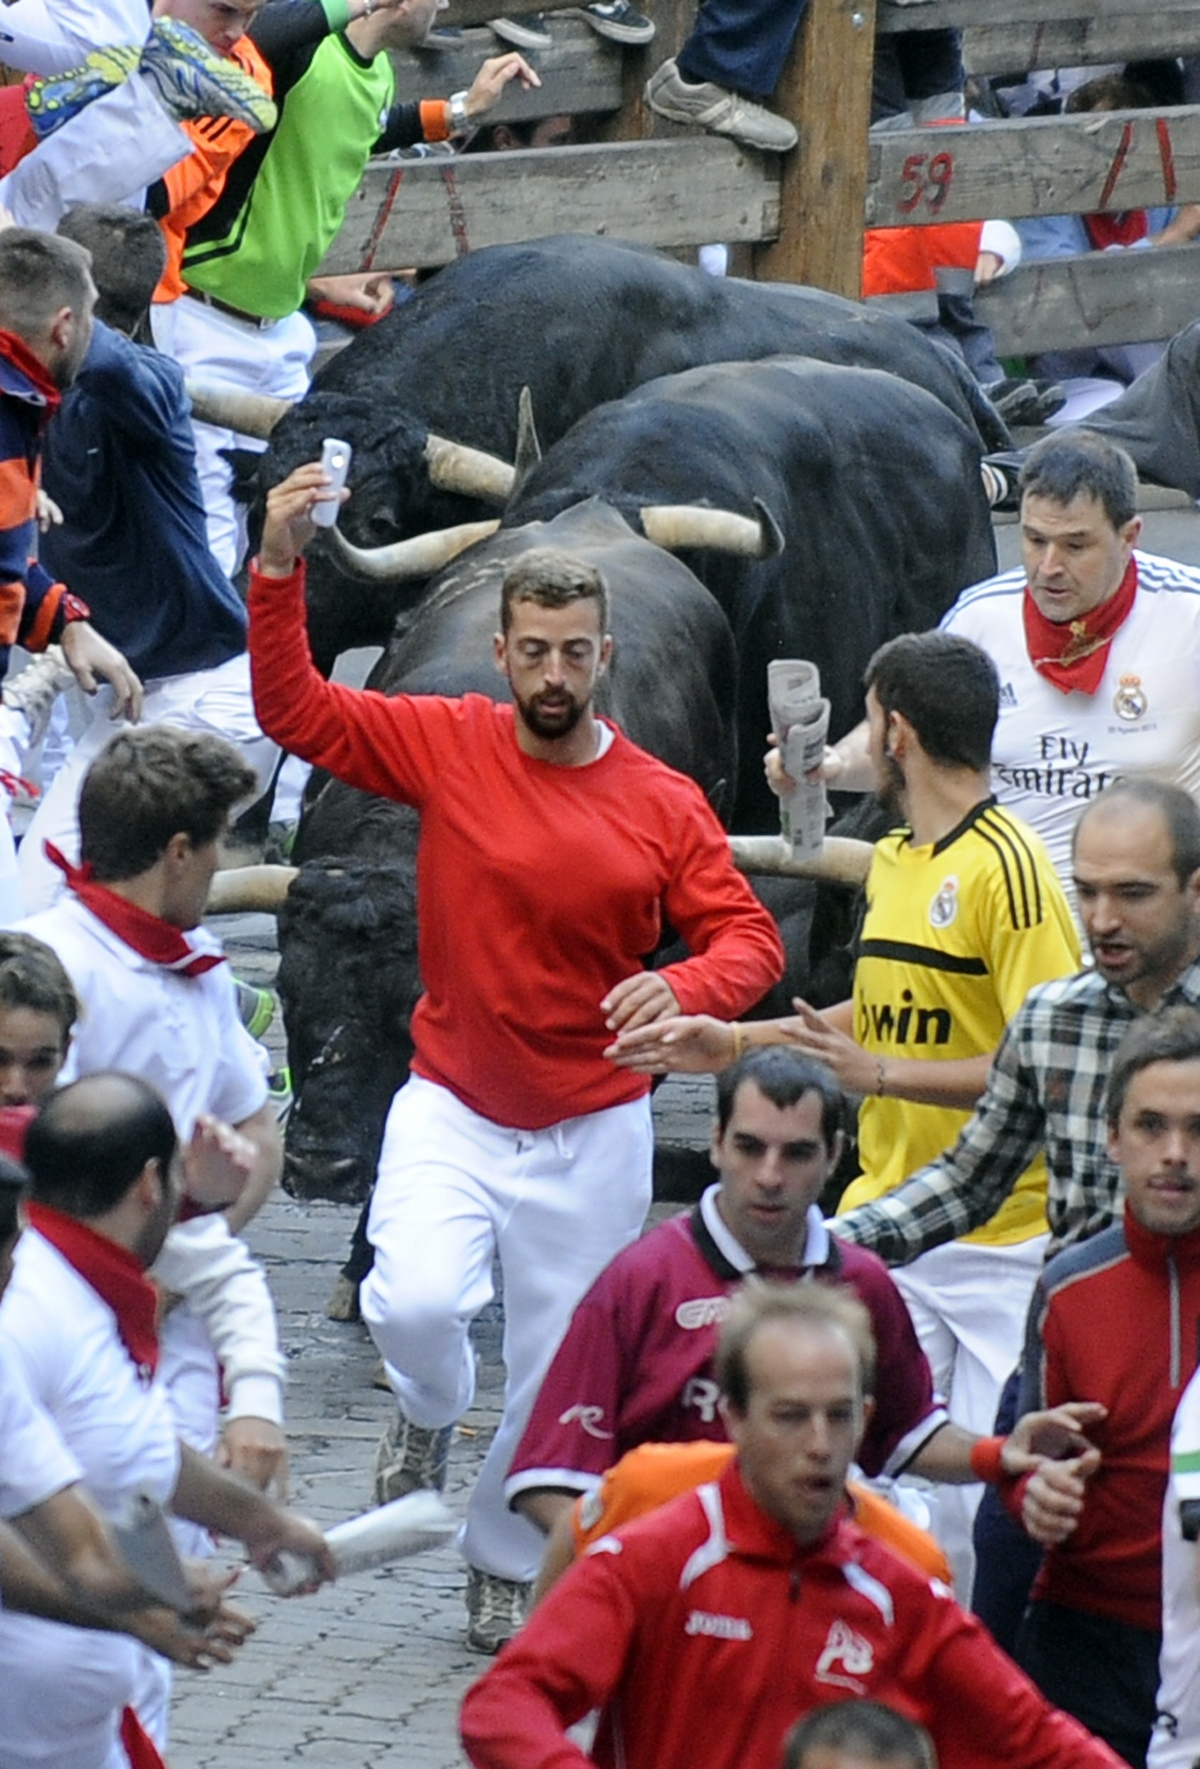 the pamplona bull run danger bull s A reveller is tossed by a heifer bull during festivities in the bullring on the first day of the san fermin bull run festival in pamplona, northern spain, on july 7, 2018.